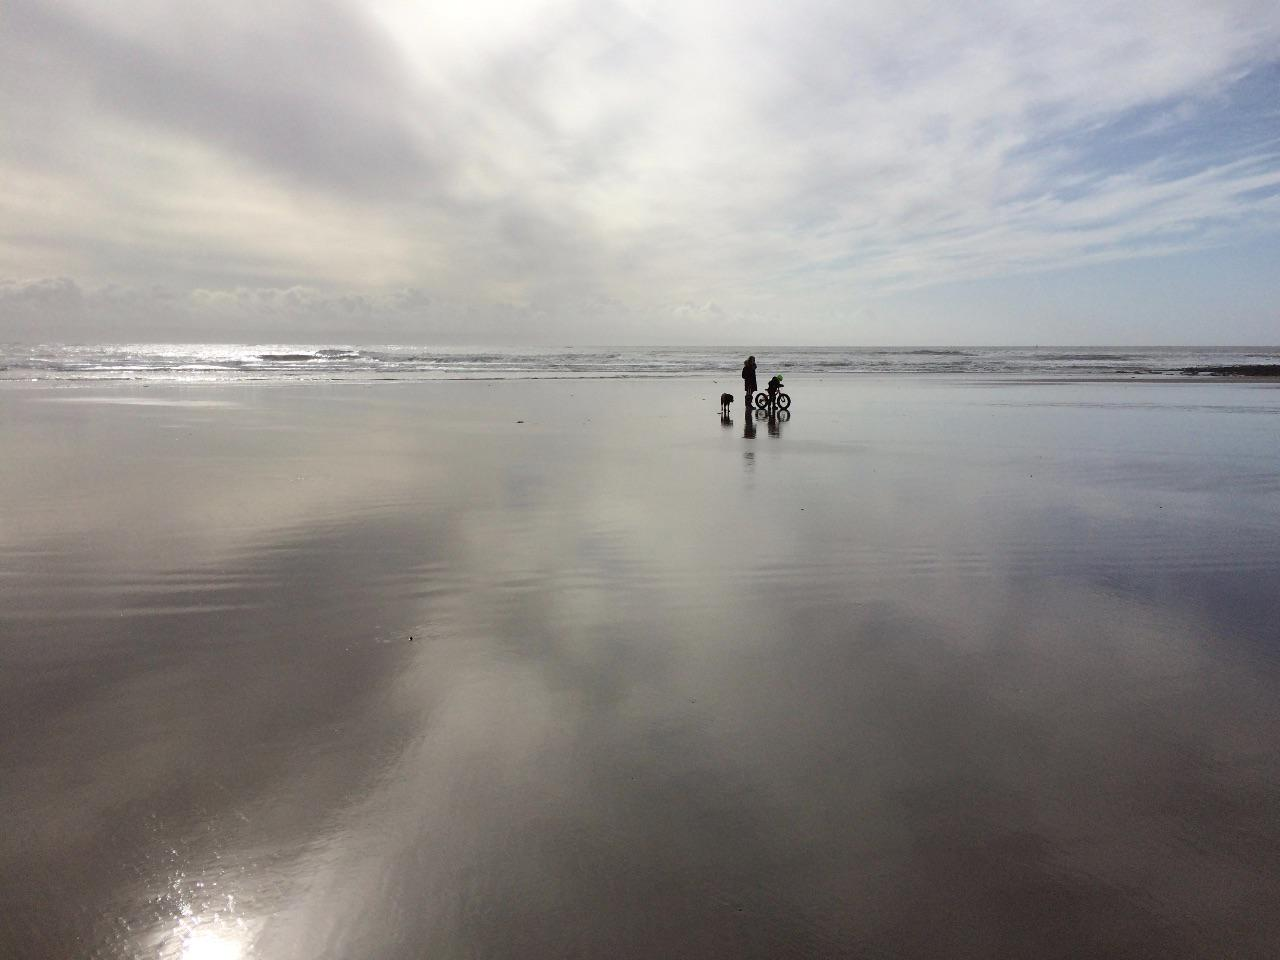 A child on a bike, an adult walking and a dog are silhouetted on the wet sand of Porthcawl at low tide